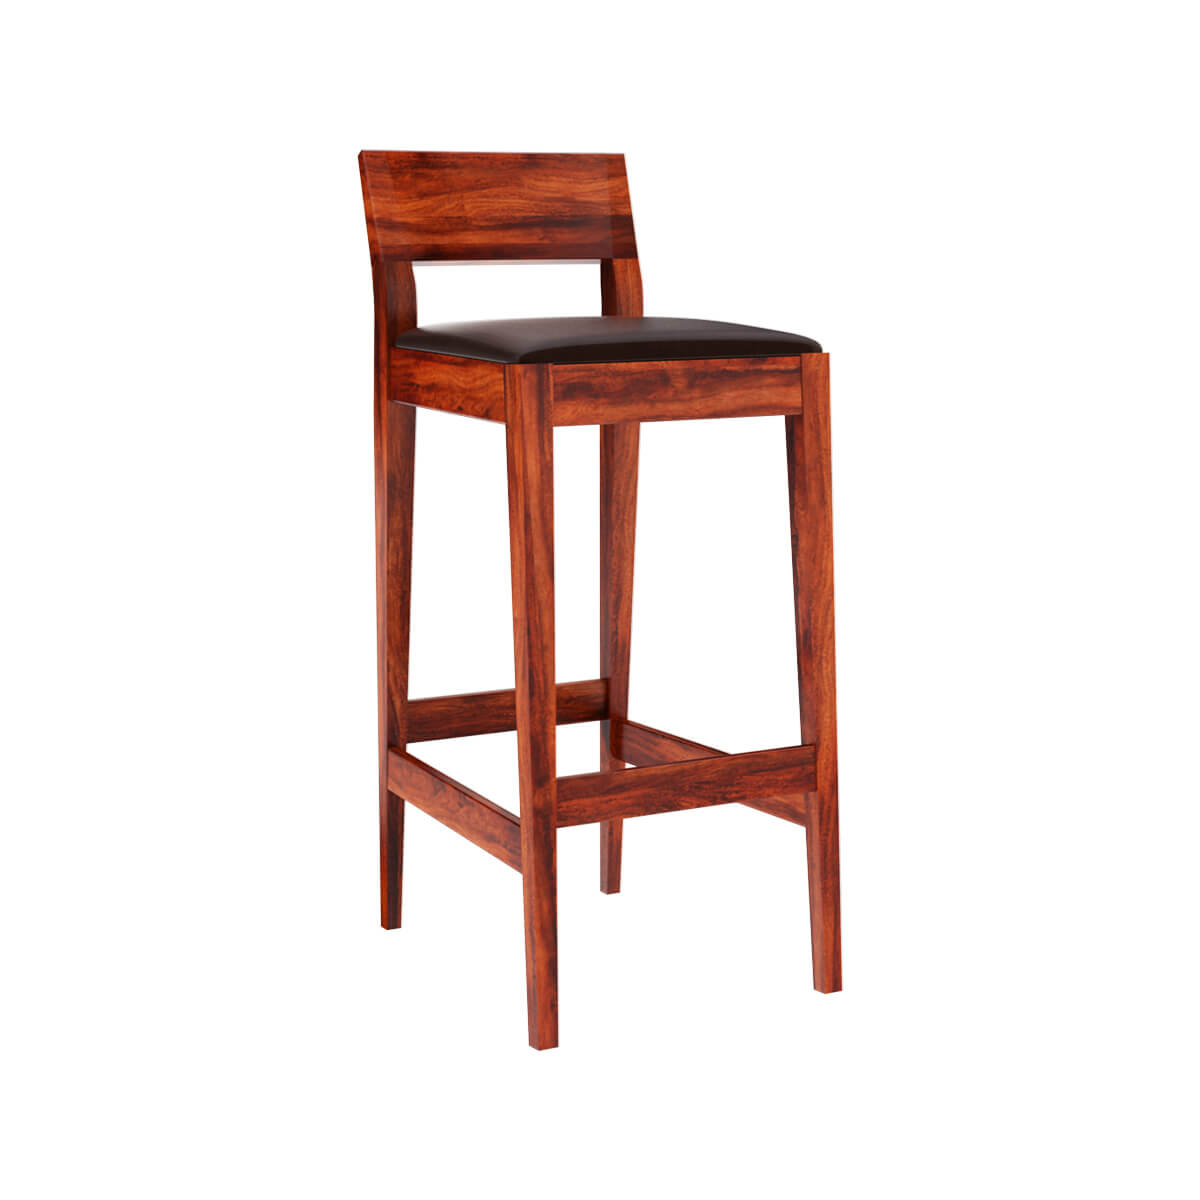 Lincoln Modern Rustic Solid Wood Low Back Tall Bar Chair (Set of 2)  sc 1 st  Sierra Living Concepts : low back bar stools wood - islam-shia.org